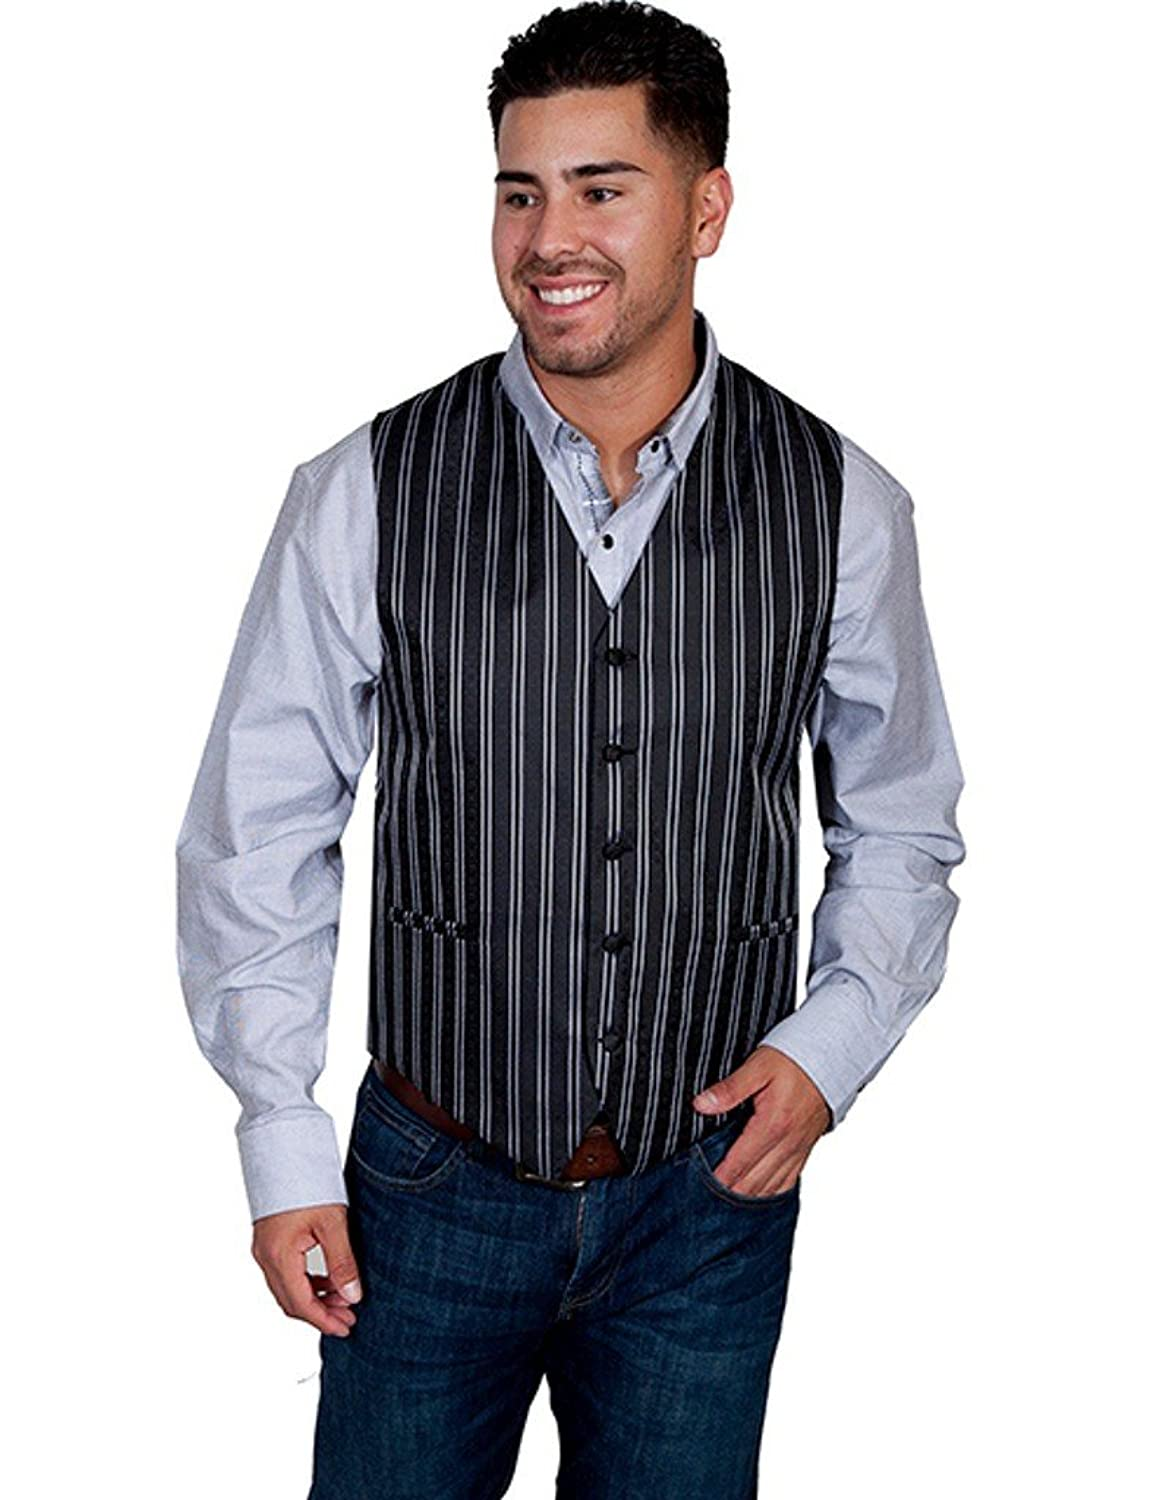 Men's Vintage Vests, Sweater Vests BIg TALL Sophisticated Double Pinstripe Western Vest $55.05 AT vintagedancer.com